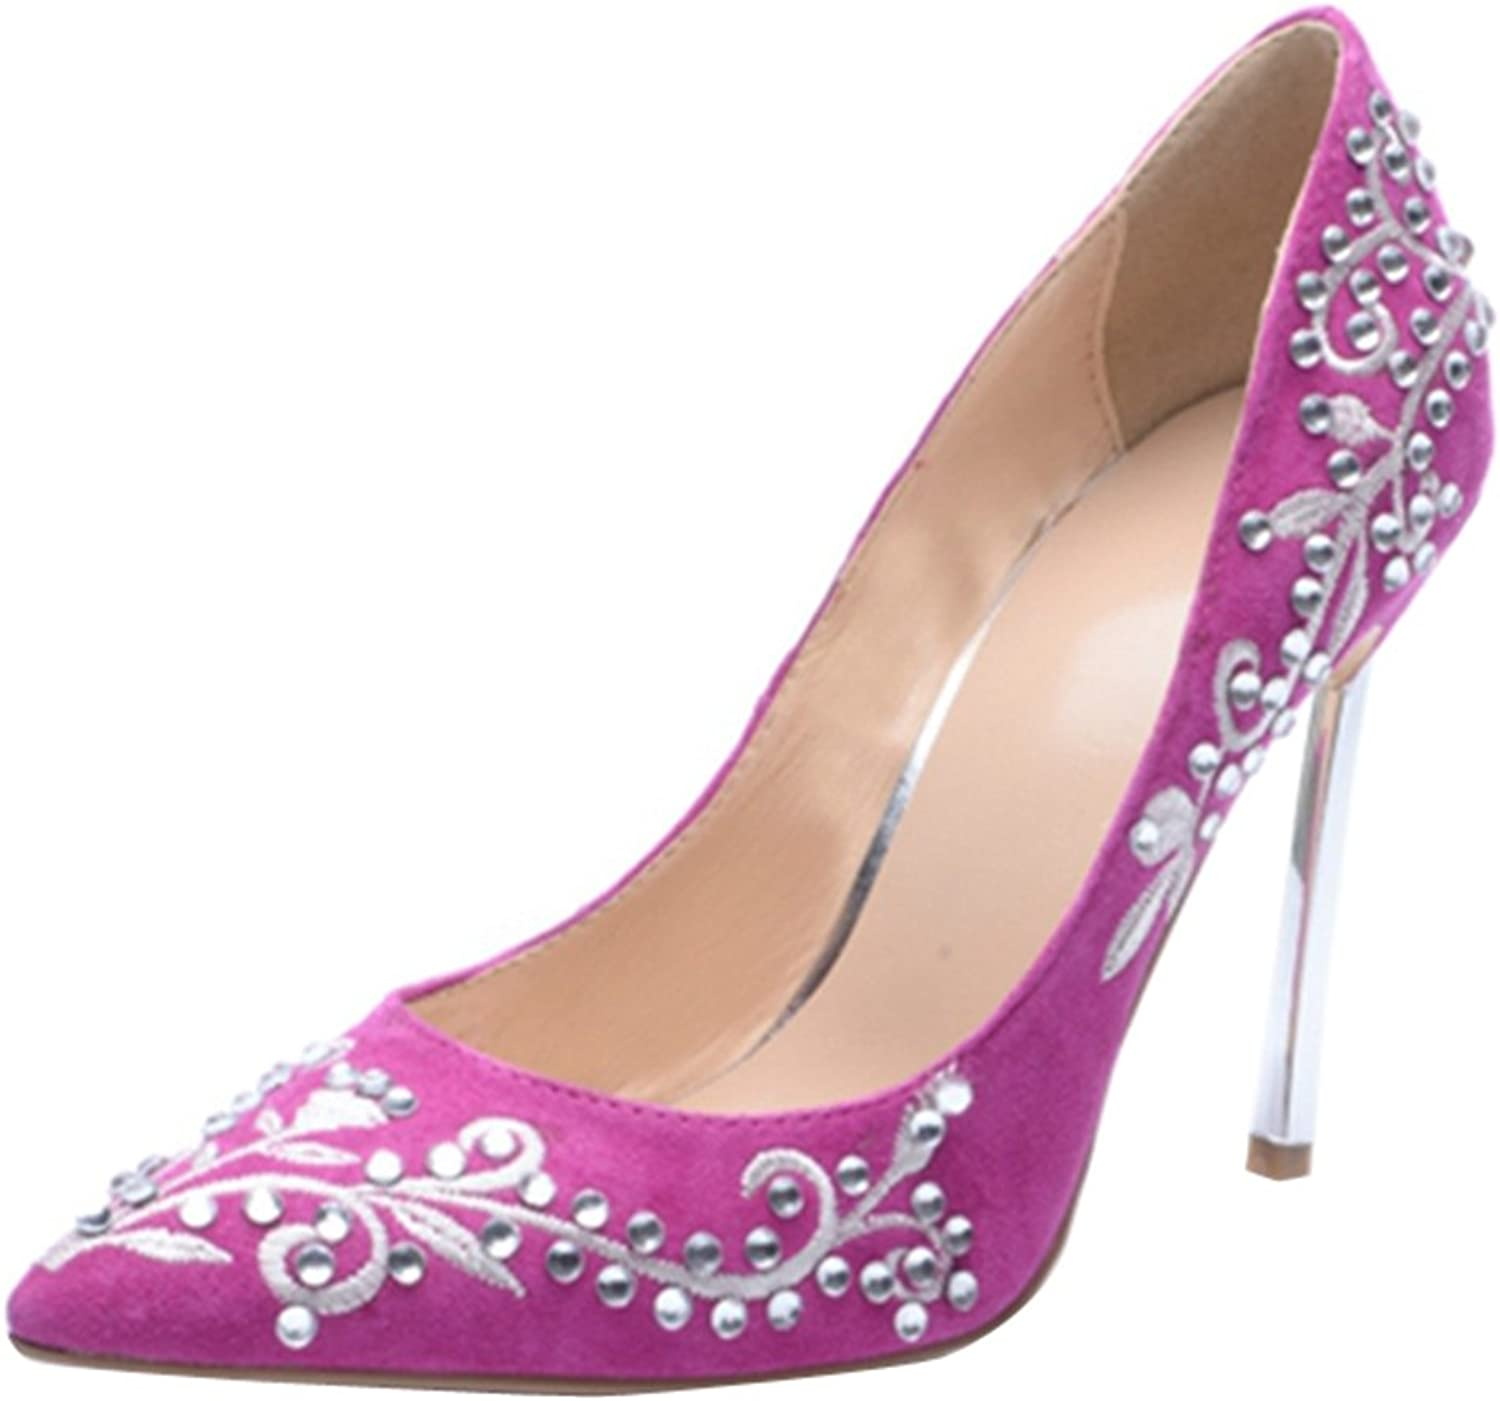 TDA Women's Charming Pointed Toe Embroidered Flower Suede Evening Party Dress Stiletto Pumps